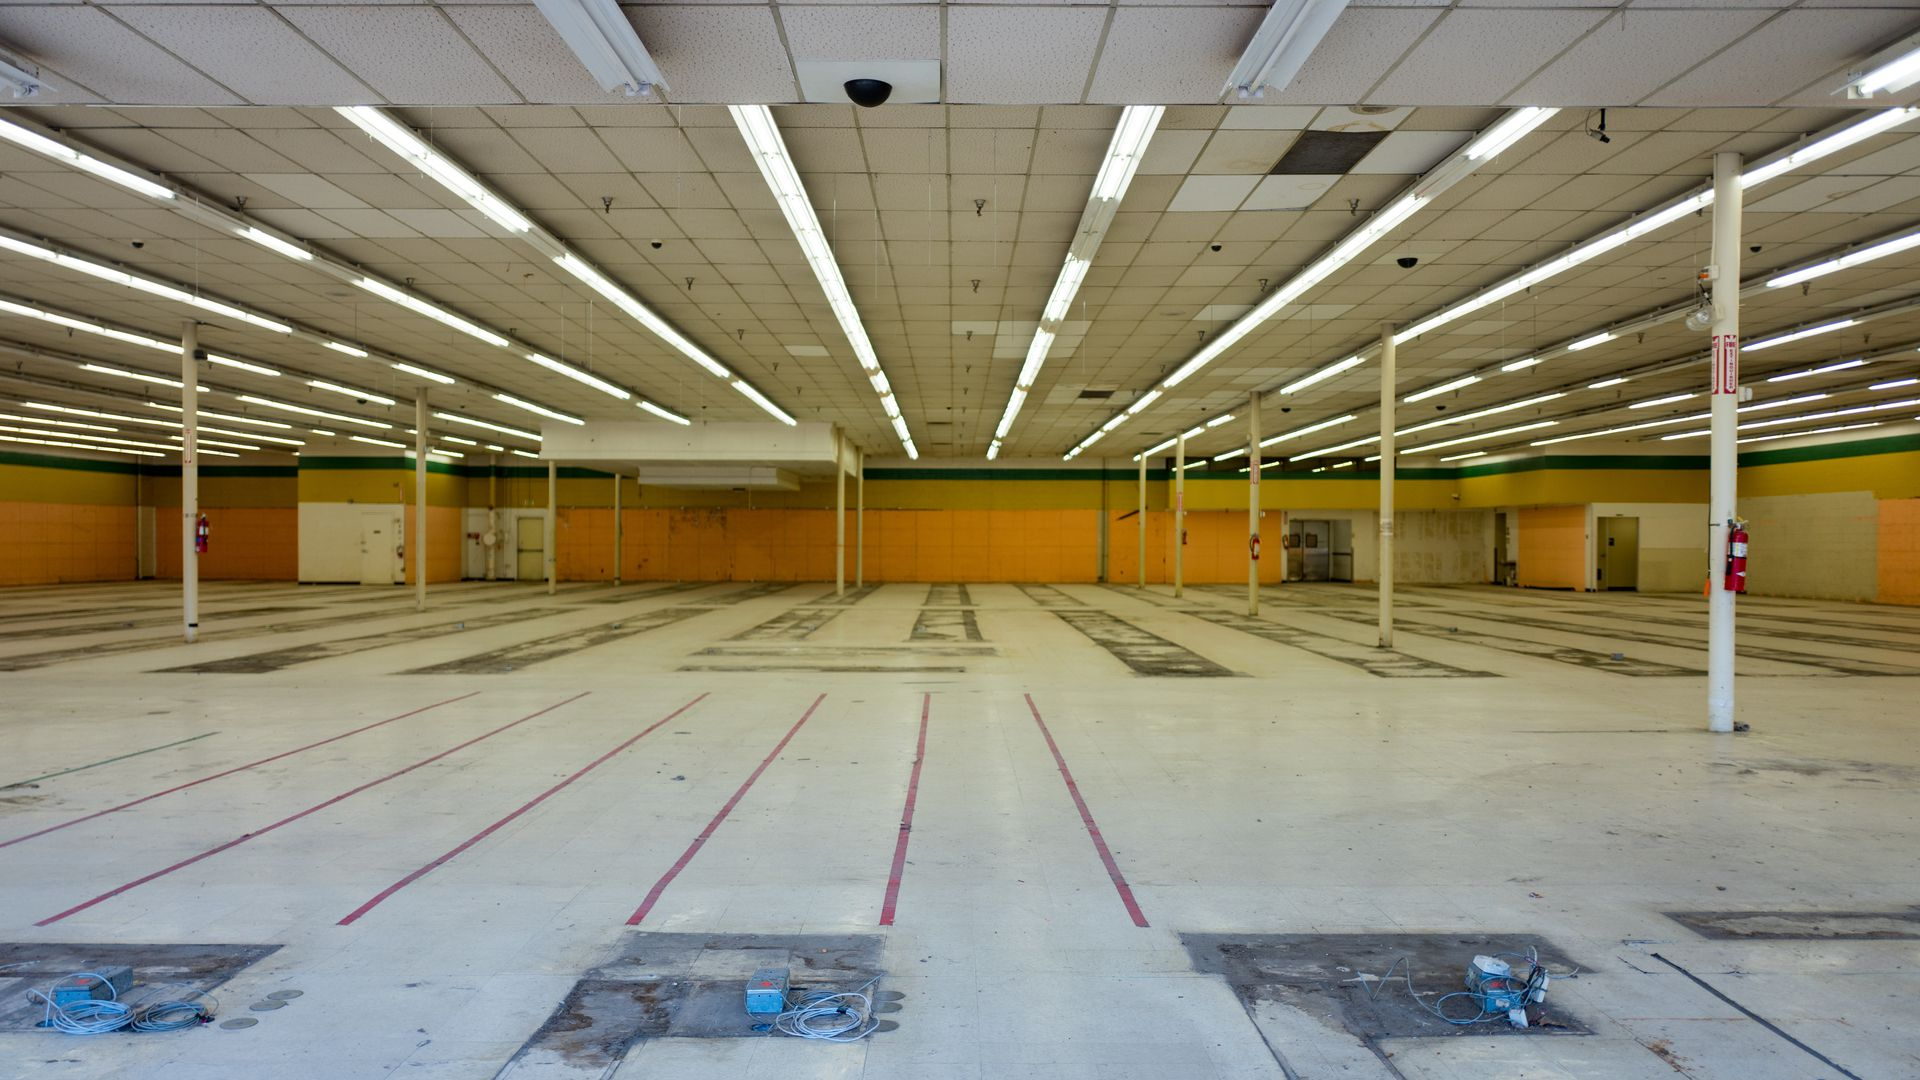 This image shows the inside of an empty and abandoned retail store with the fluorescent lights on.